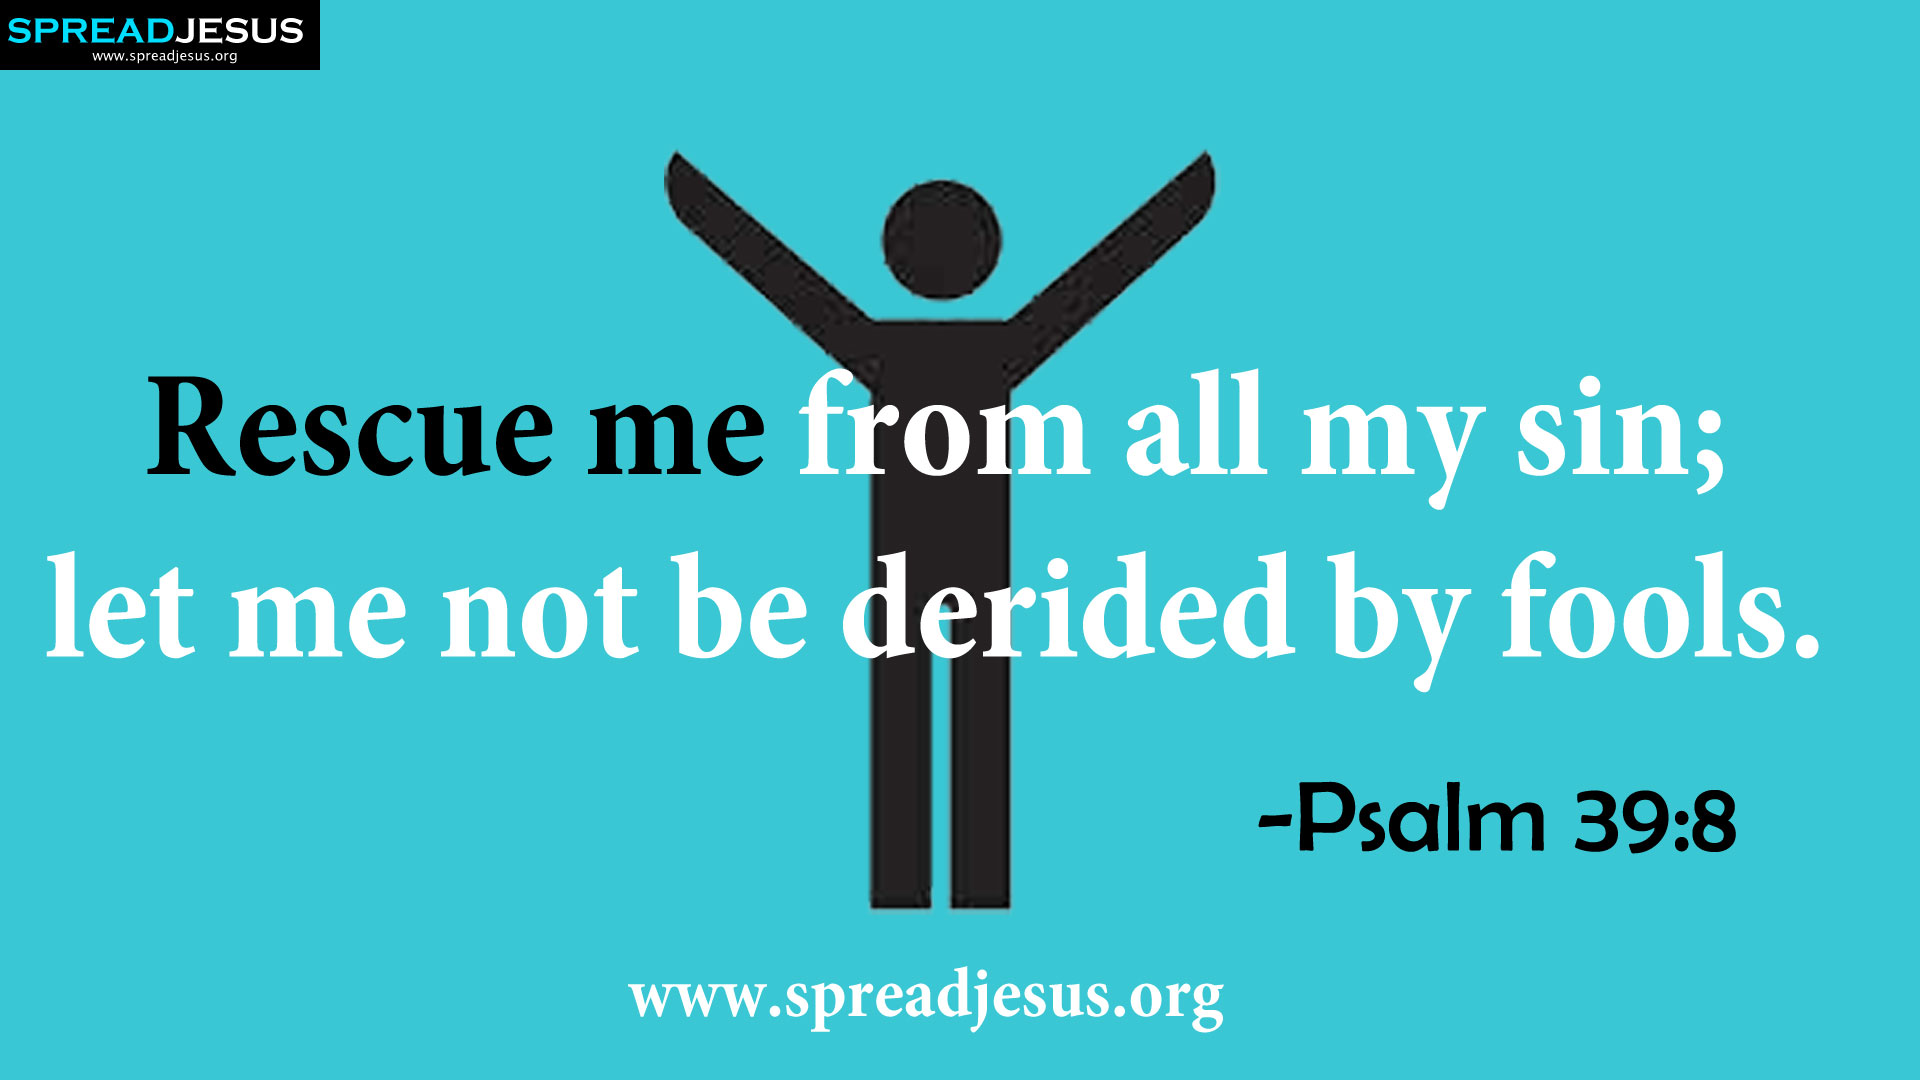 WORD OF GOD HD-WALLPAPERS Rescue me from all my sin Psalm 39:8